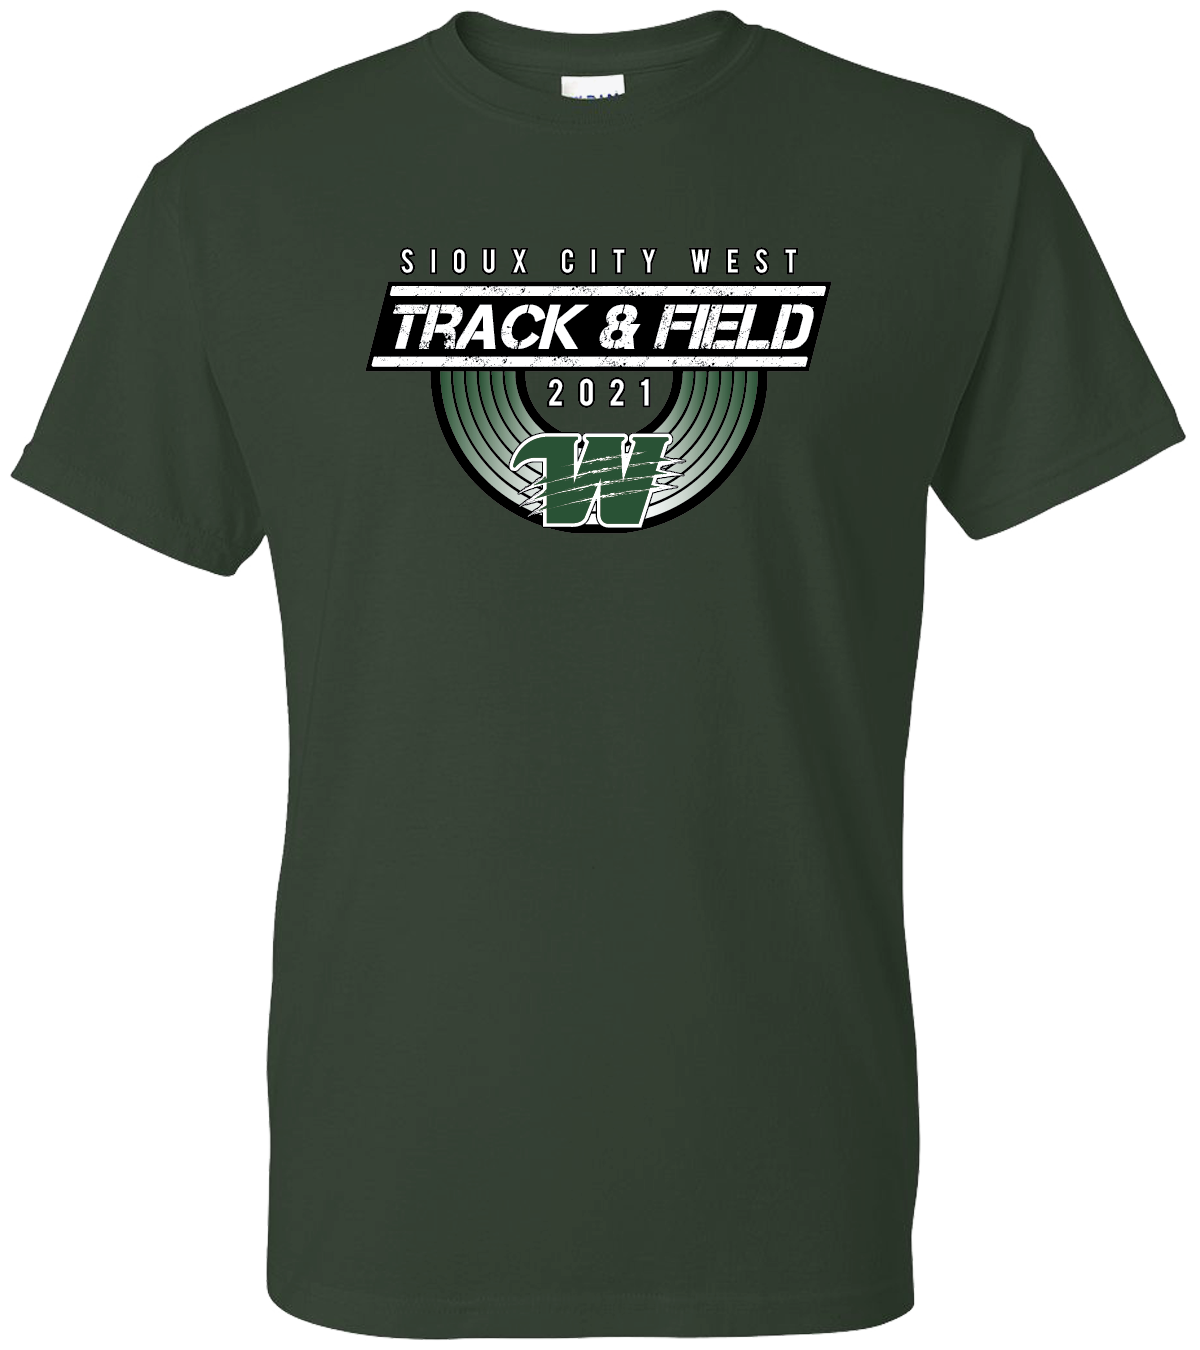 Sioux City West 2021 Track & Field